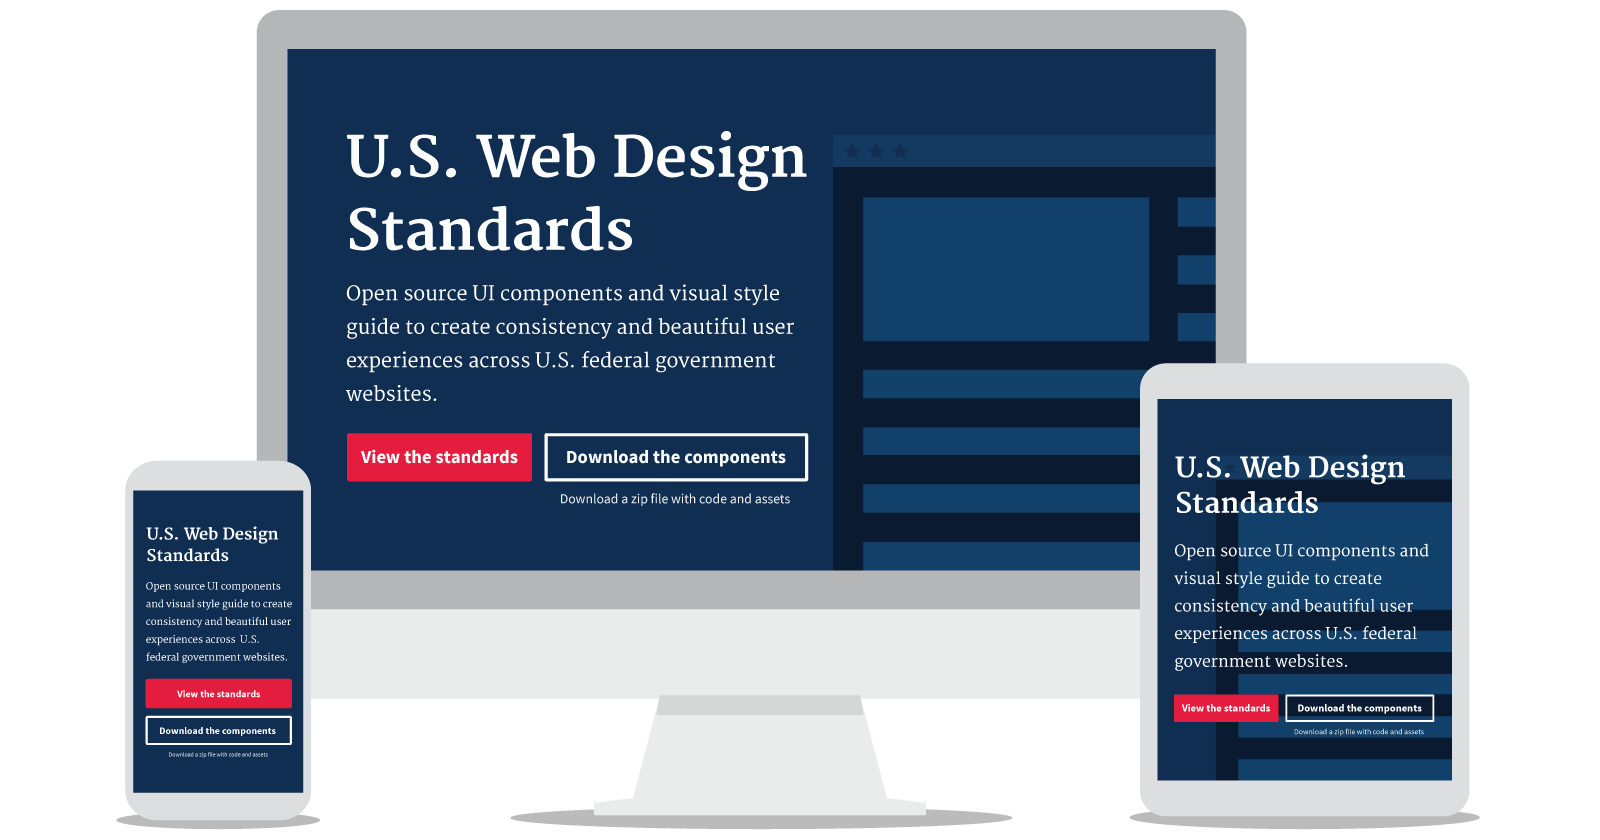 Bon The Draft U.S. Web Design Standards Homepage On Multiple Devices